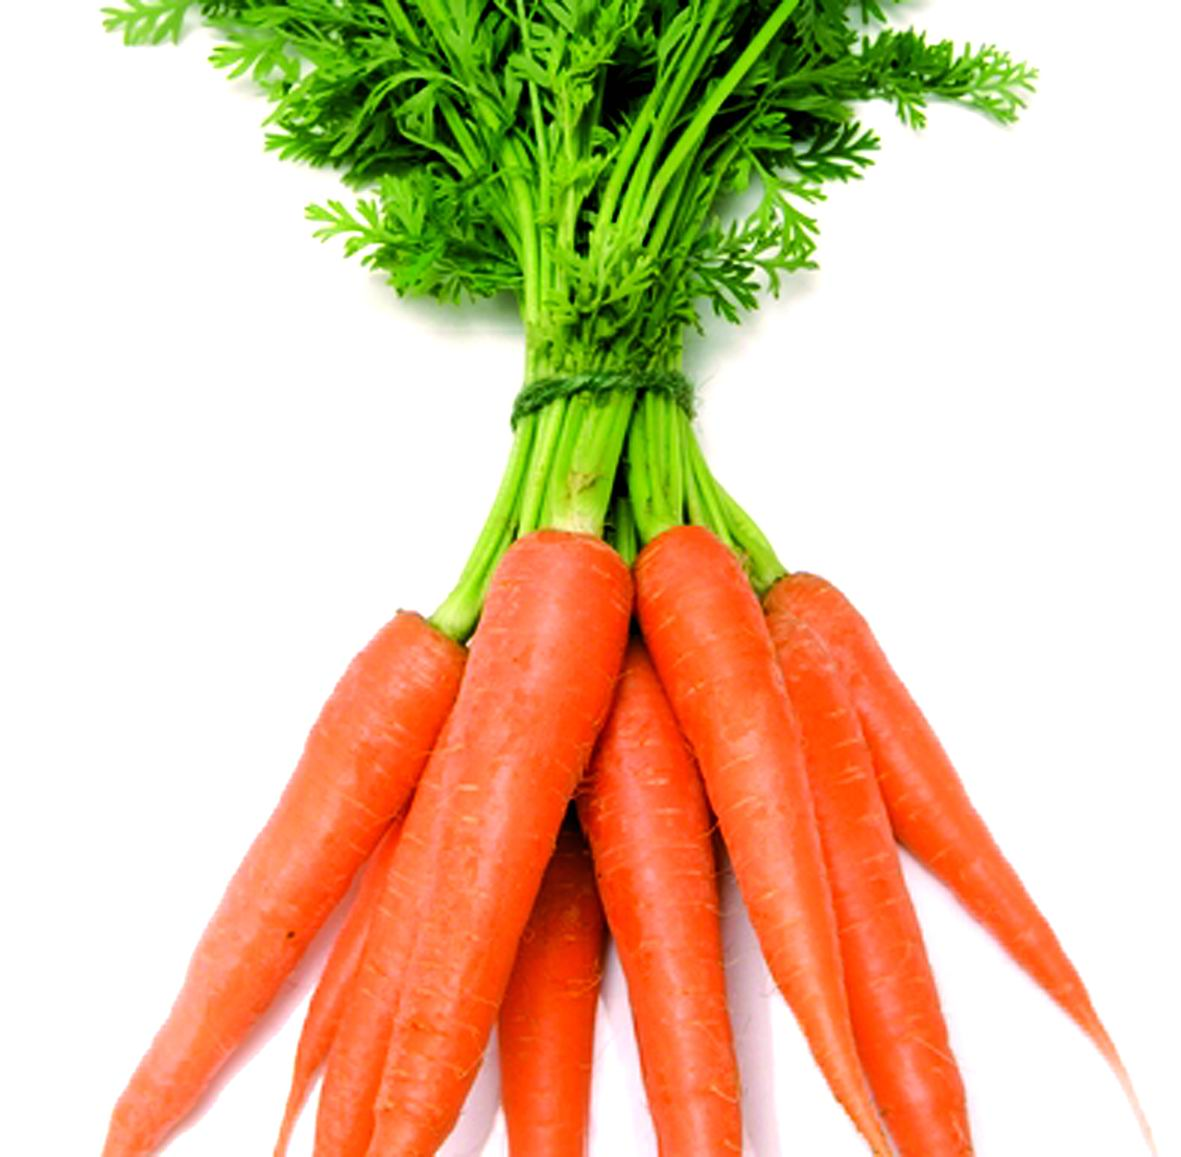 Carrot | Nature at Home